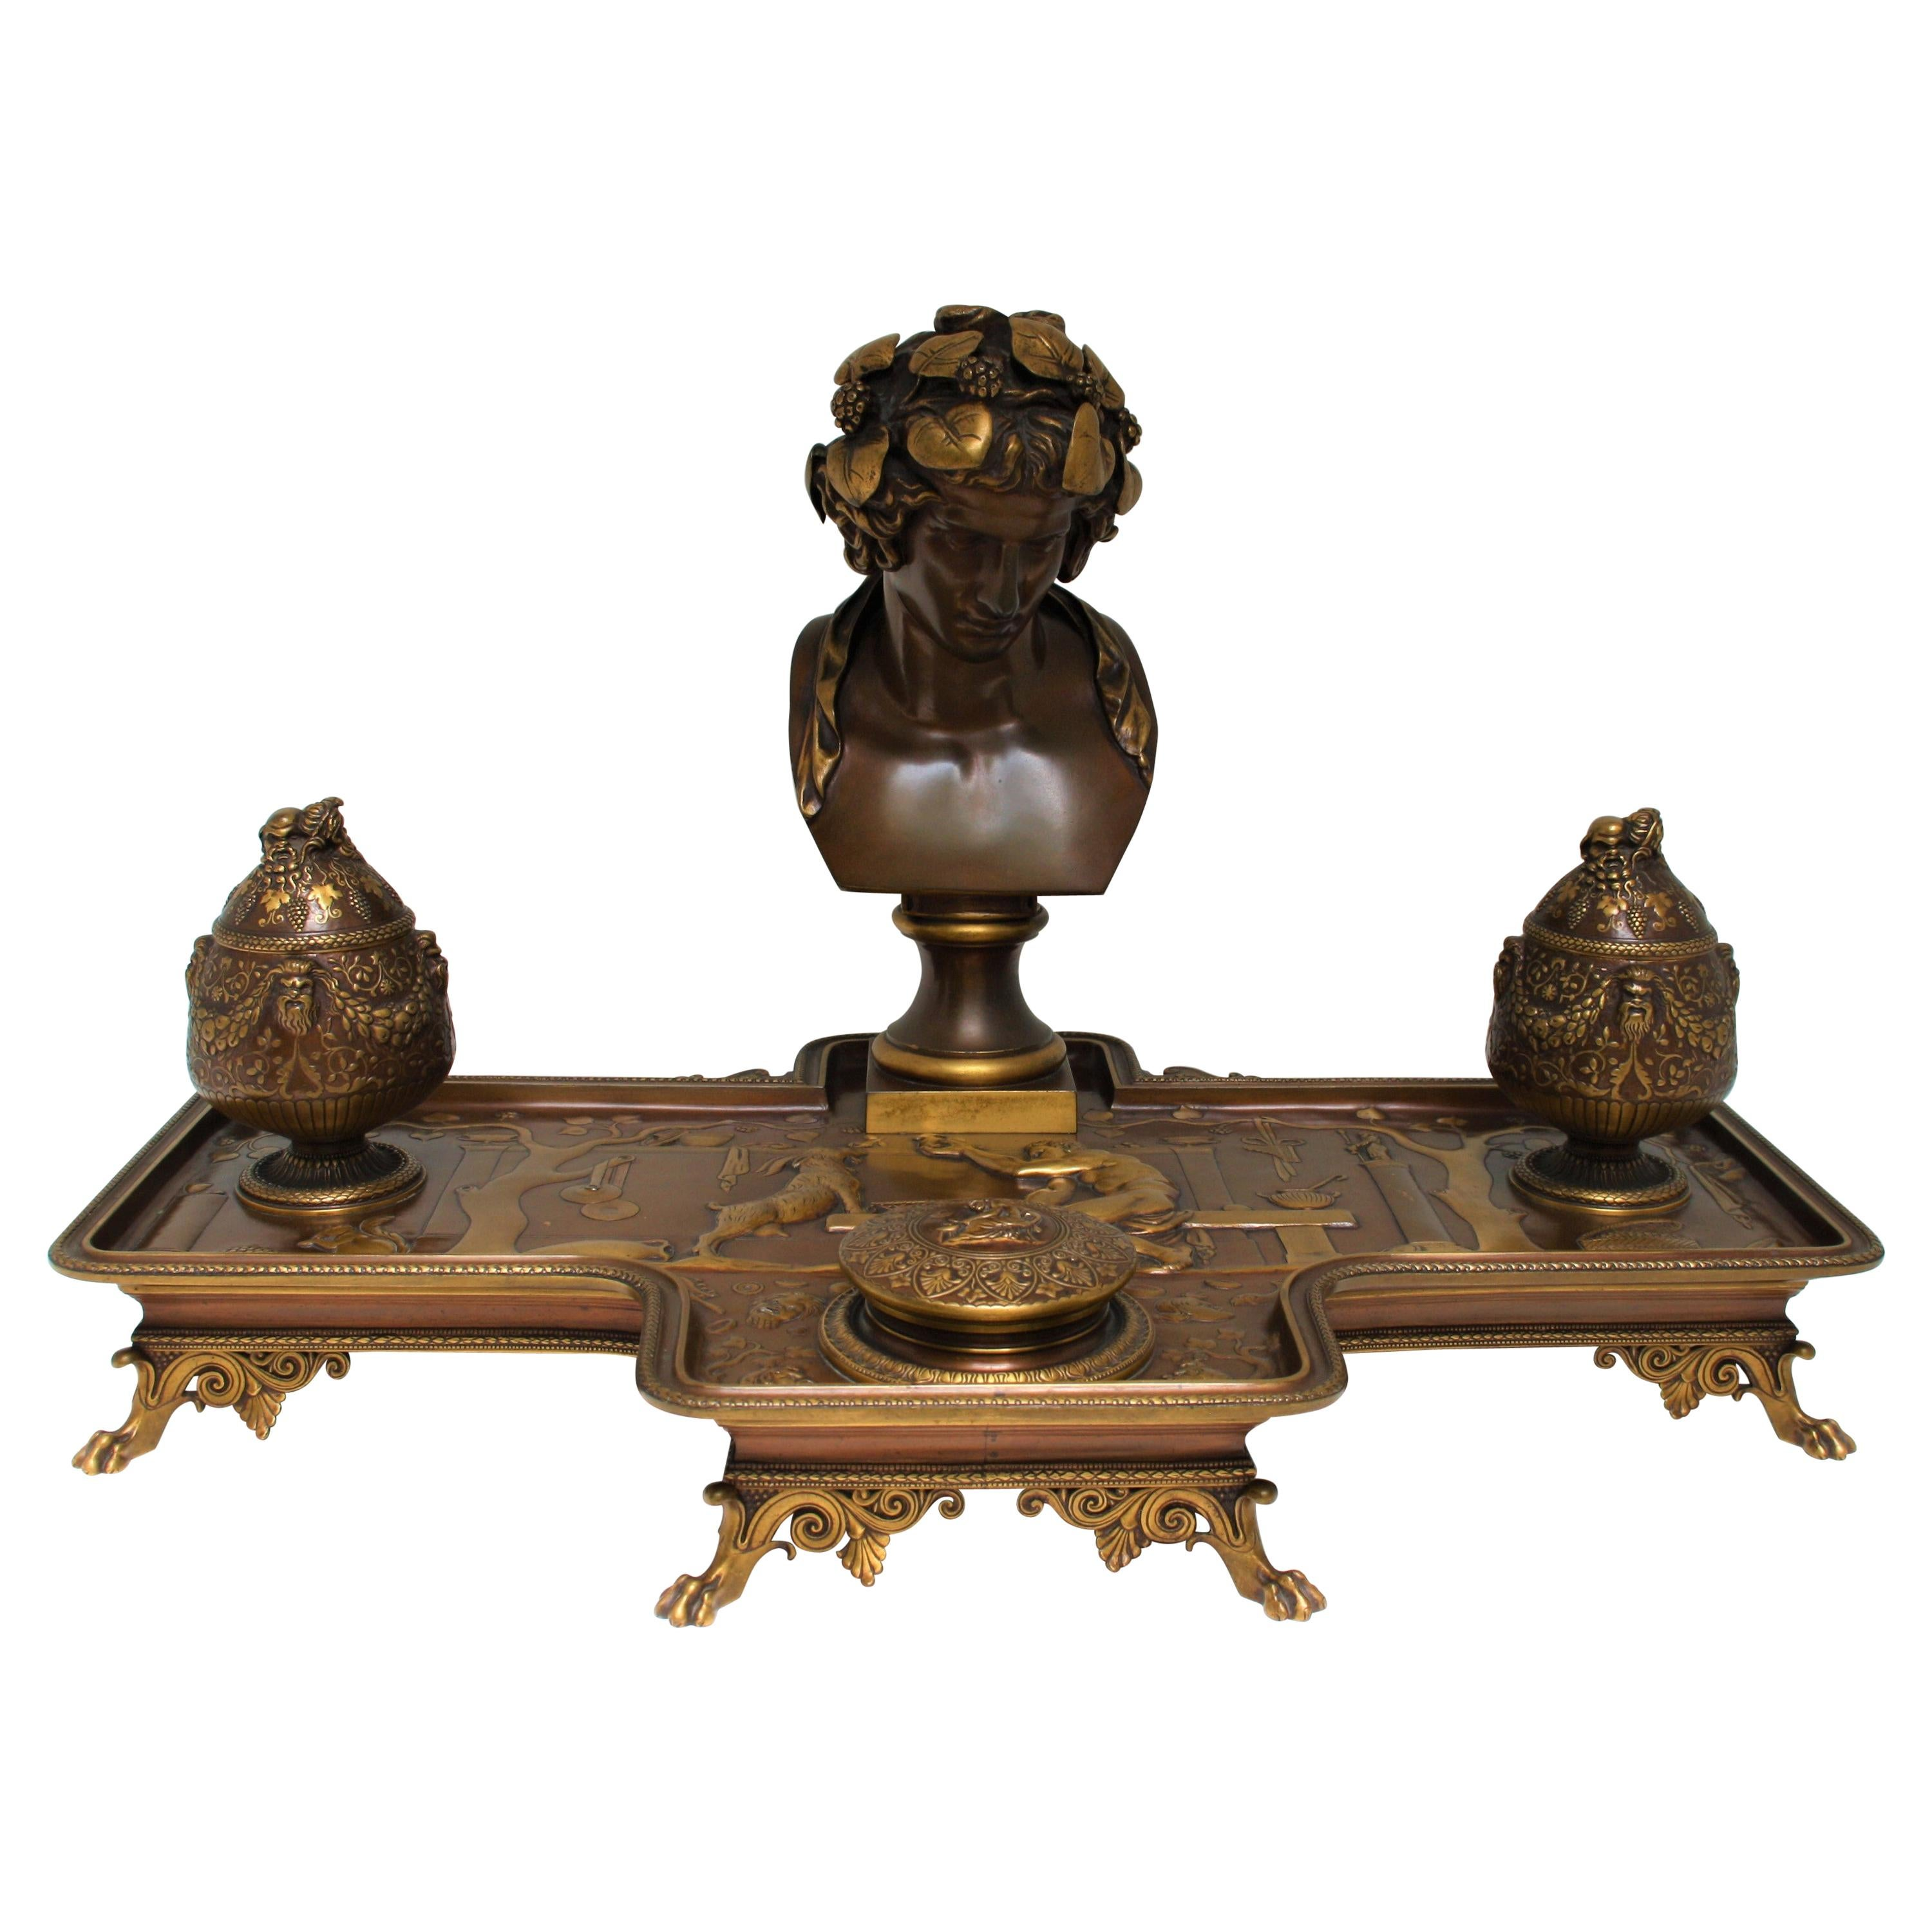 19th Century Neoclassical Bronze Desk Set by F. Levillain and F. Barbedienne